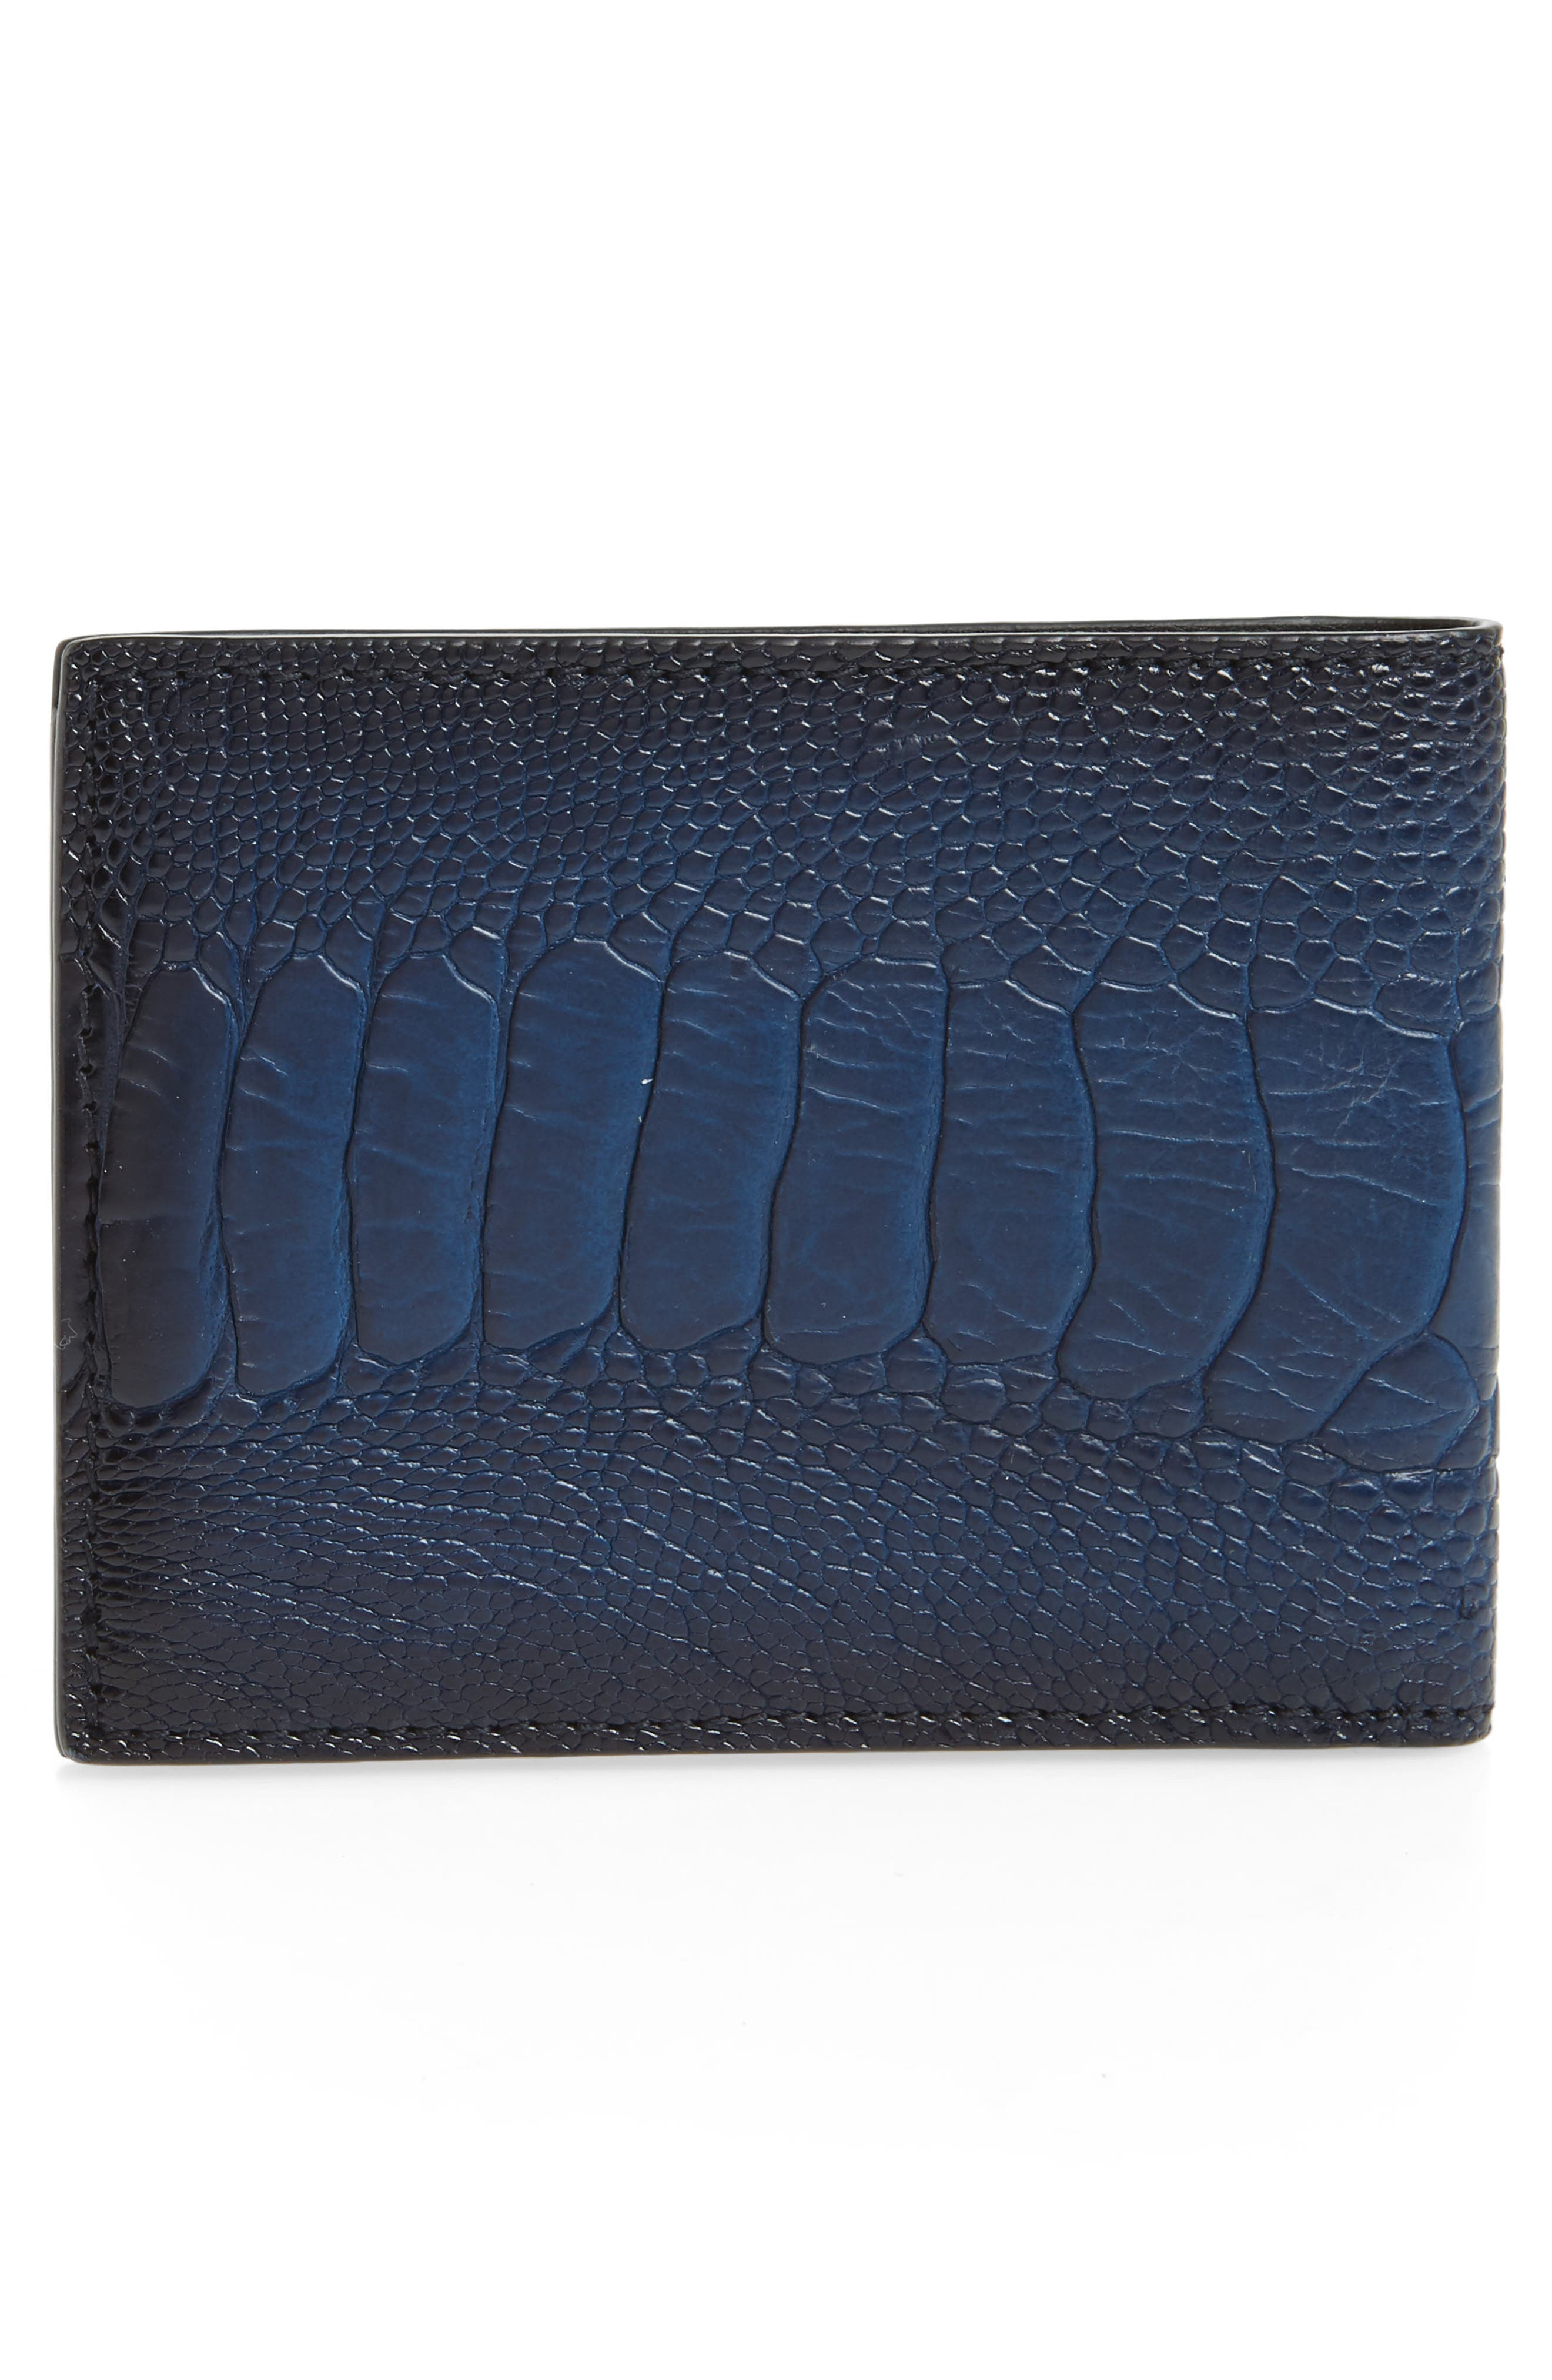 Leather Wallet,                             Alternate thumbnail 6, color,